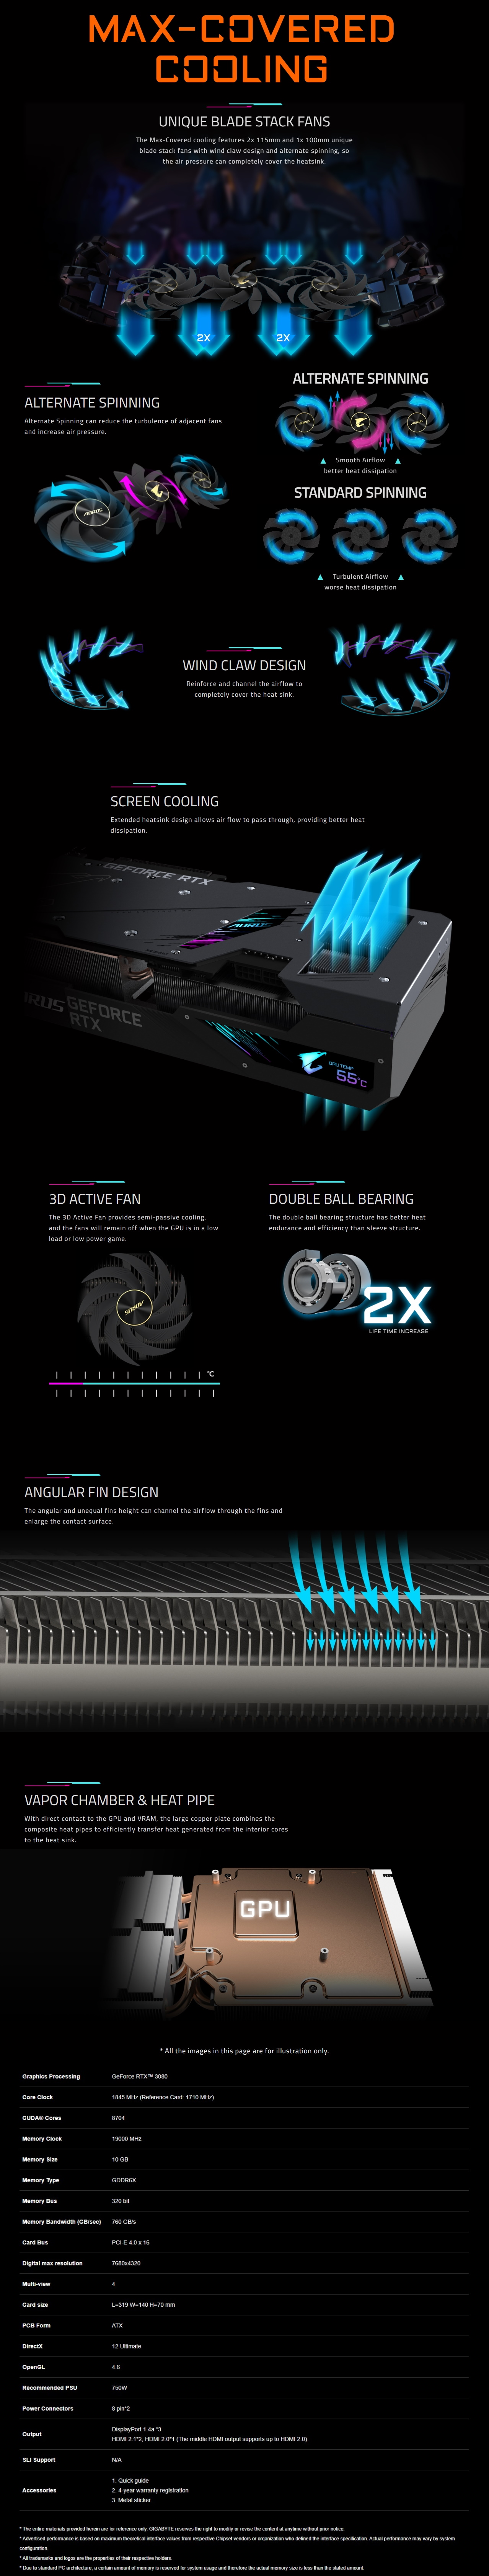 A large marketing image providing additional information about the product Gigabyte GeForce RTX 3080 Aorus Master 10GB GDDR6X - Additional alt info not provided